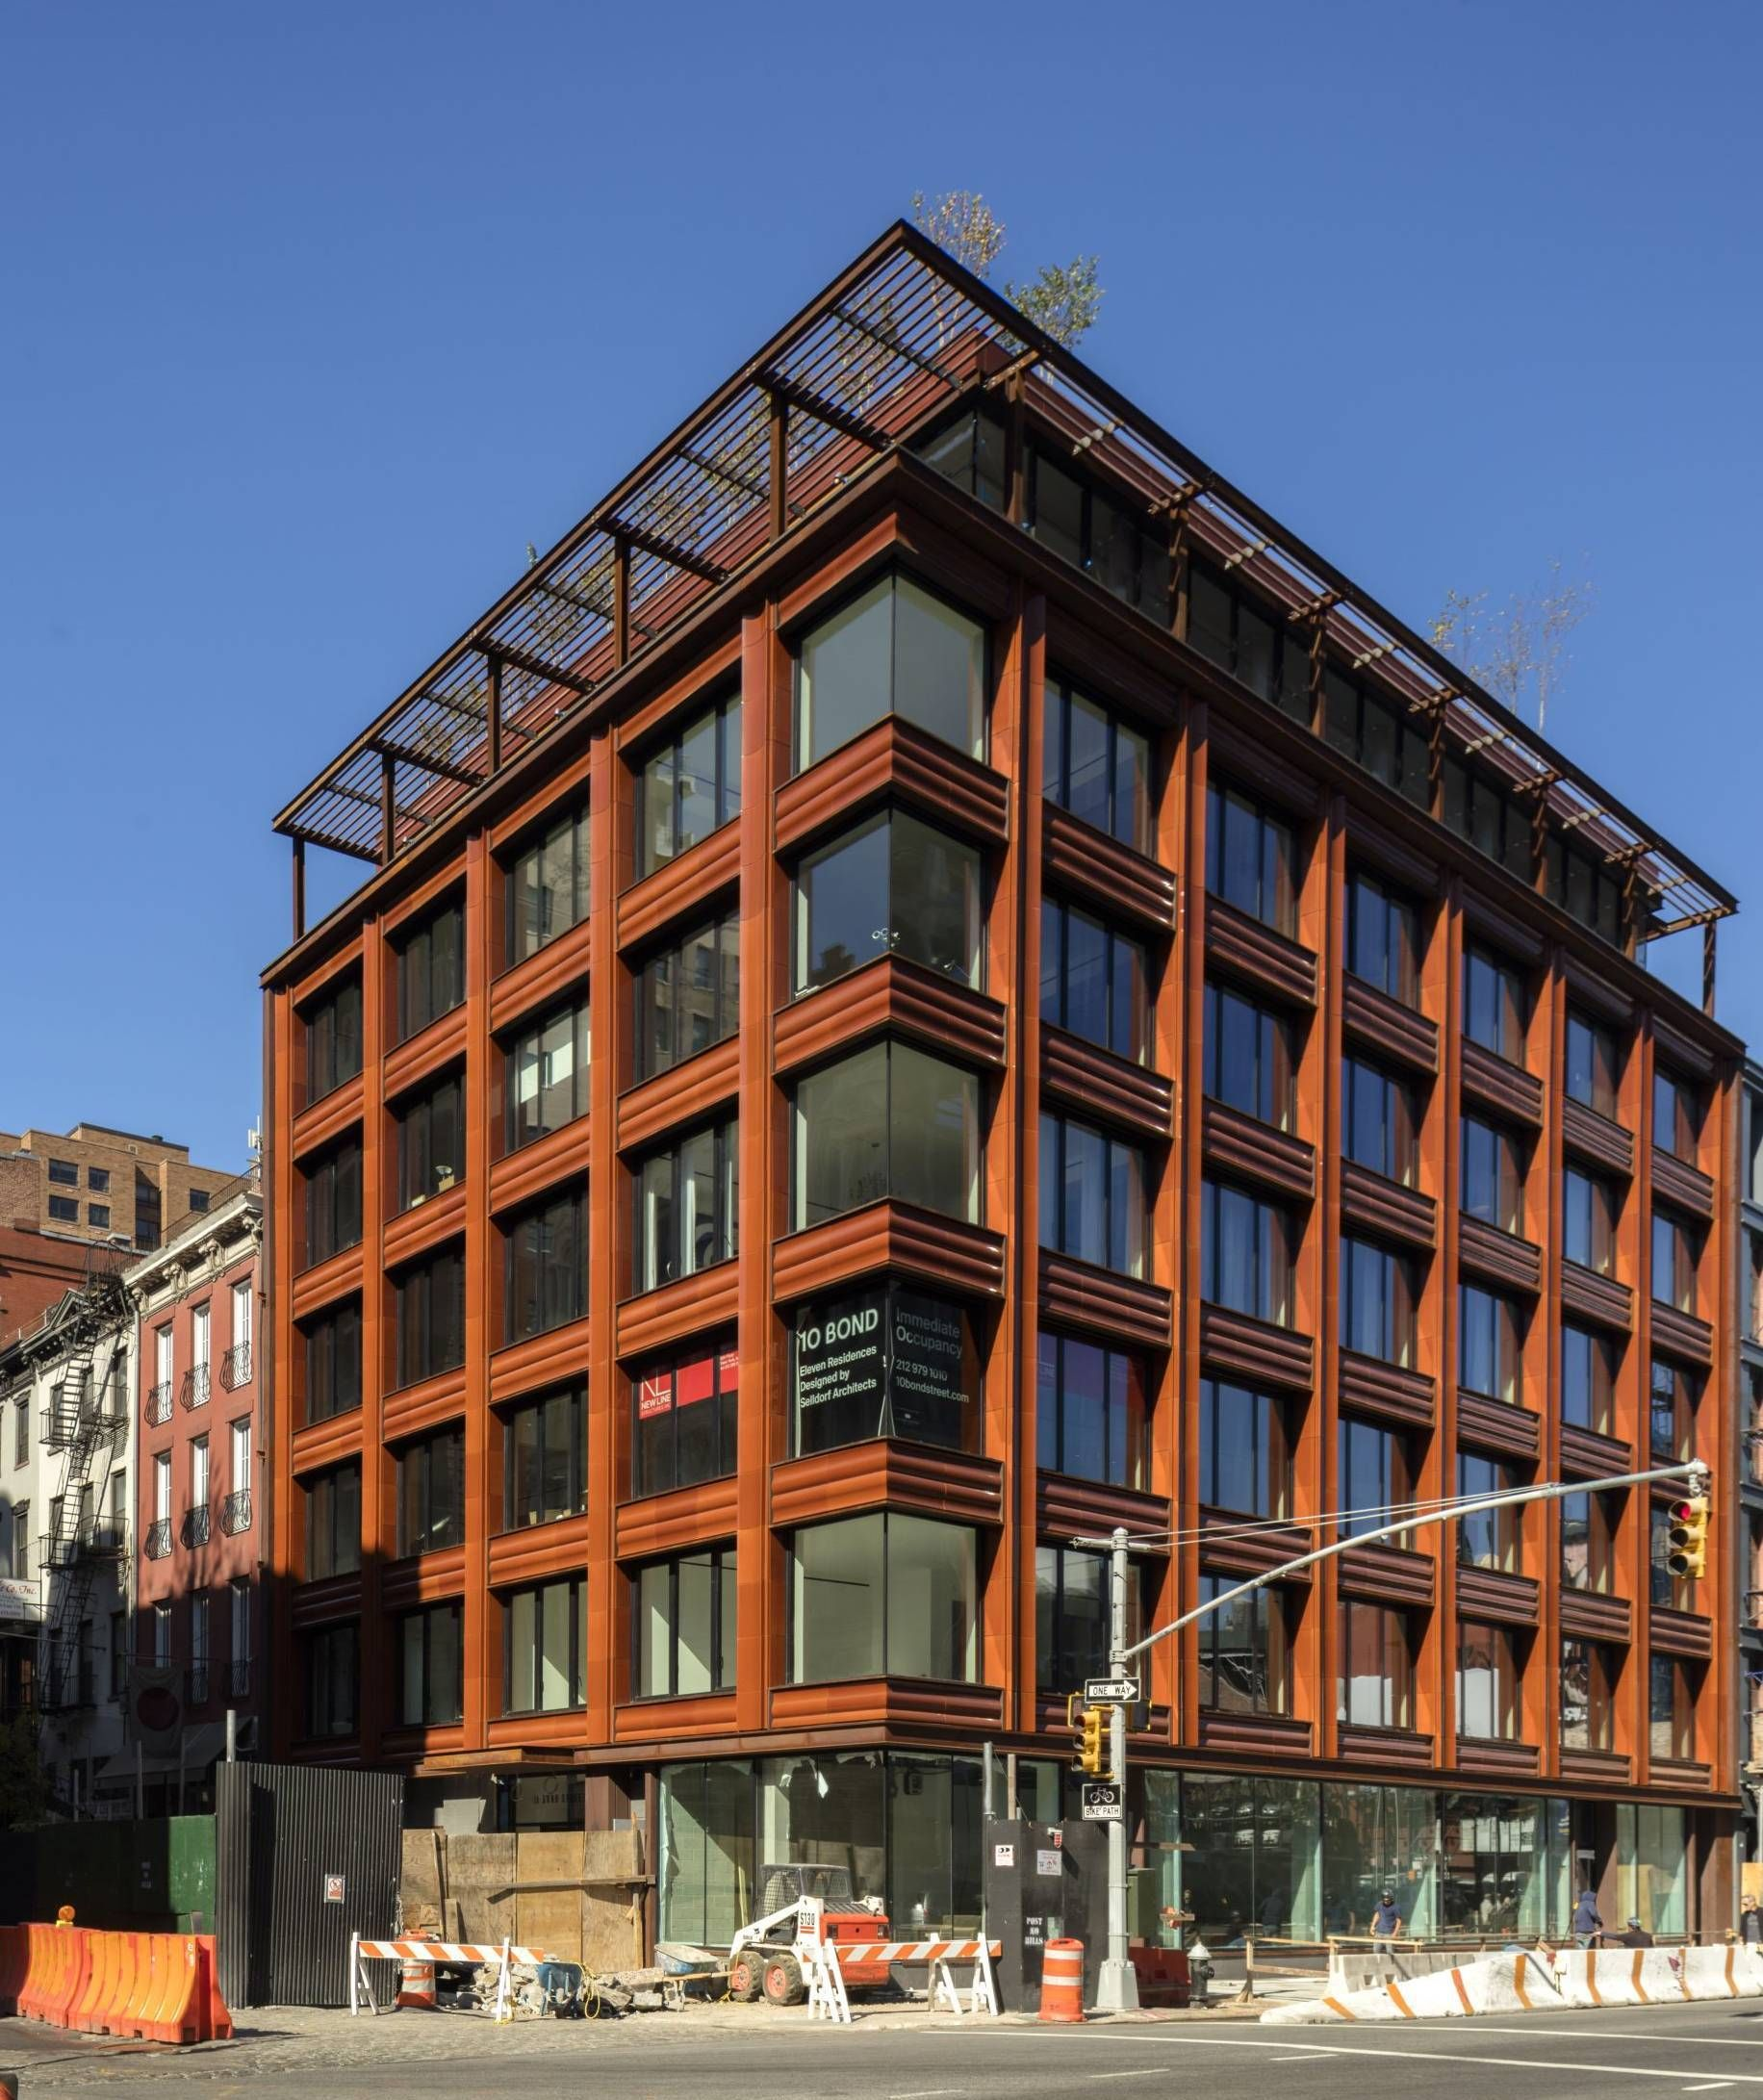 San Francisco Light Industrial Zoning: MODERN METAL RETAIL BUILDING - Google Search